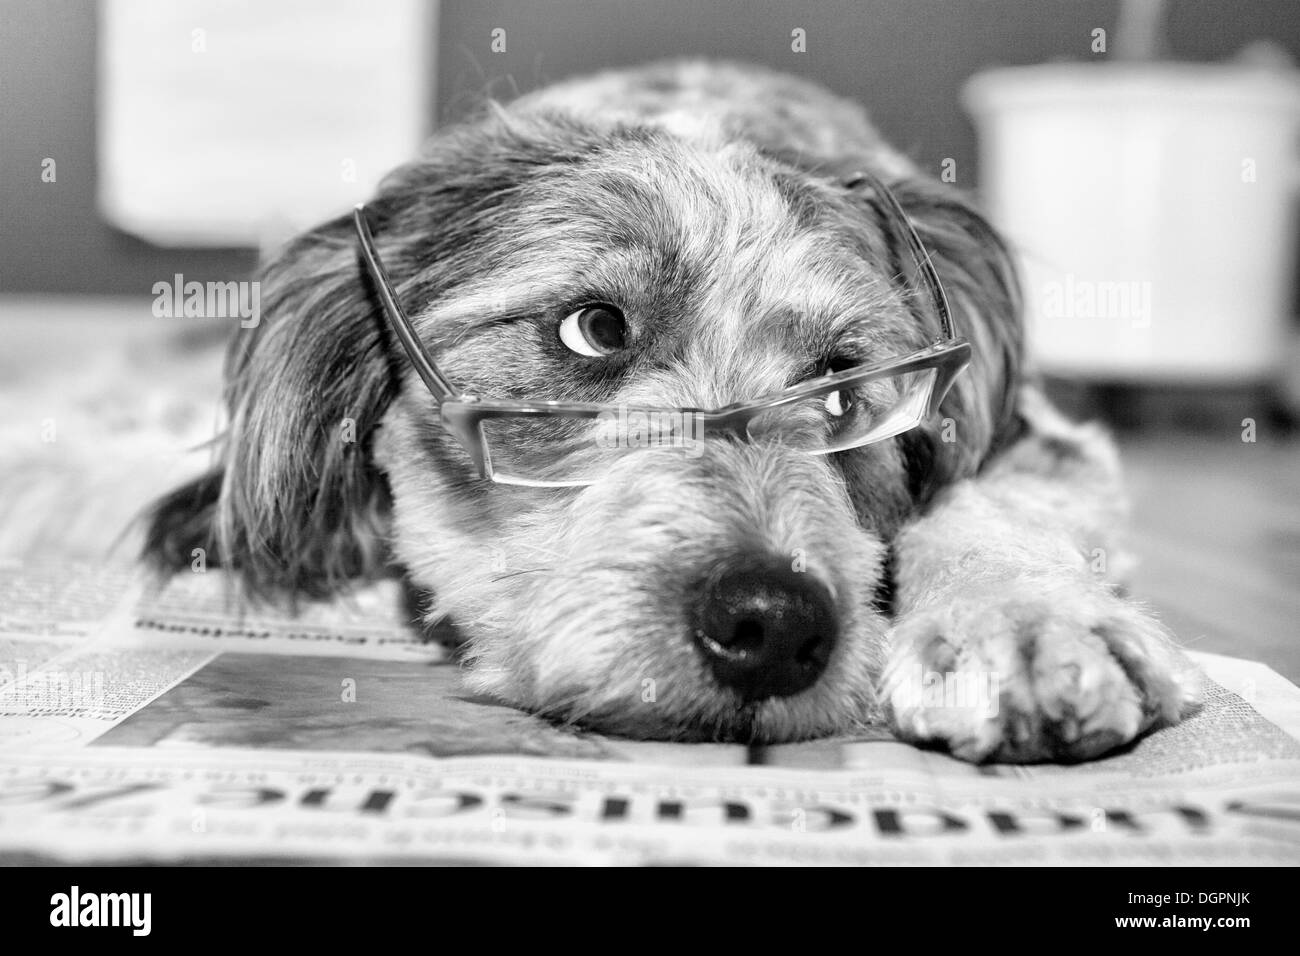 Dog lying on a newspaper wearing glasses - Stock Image